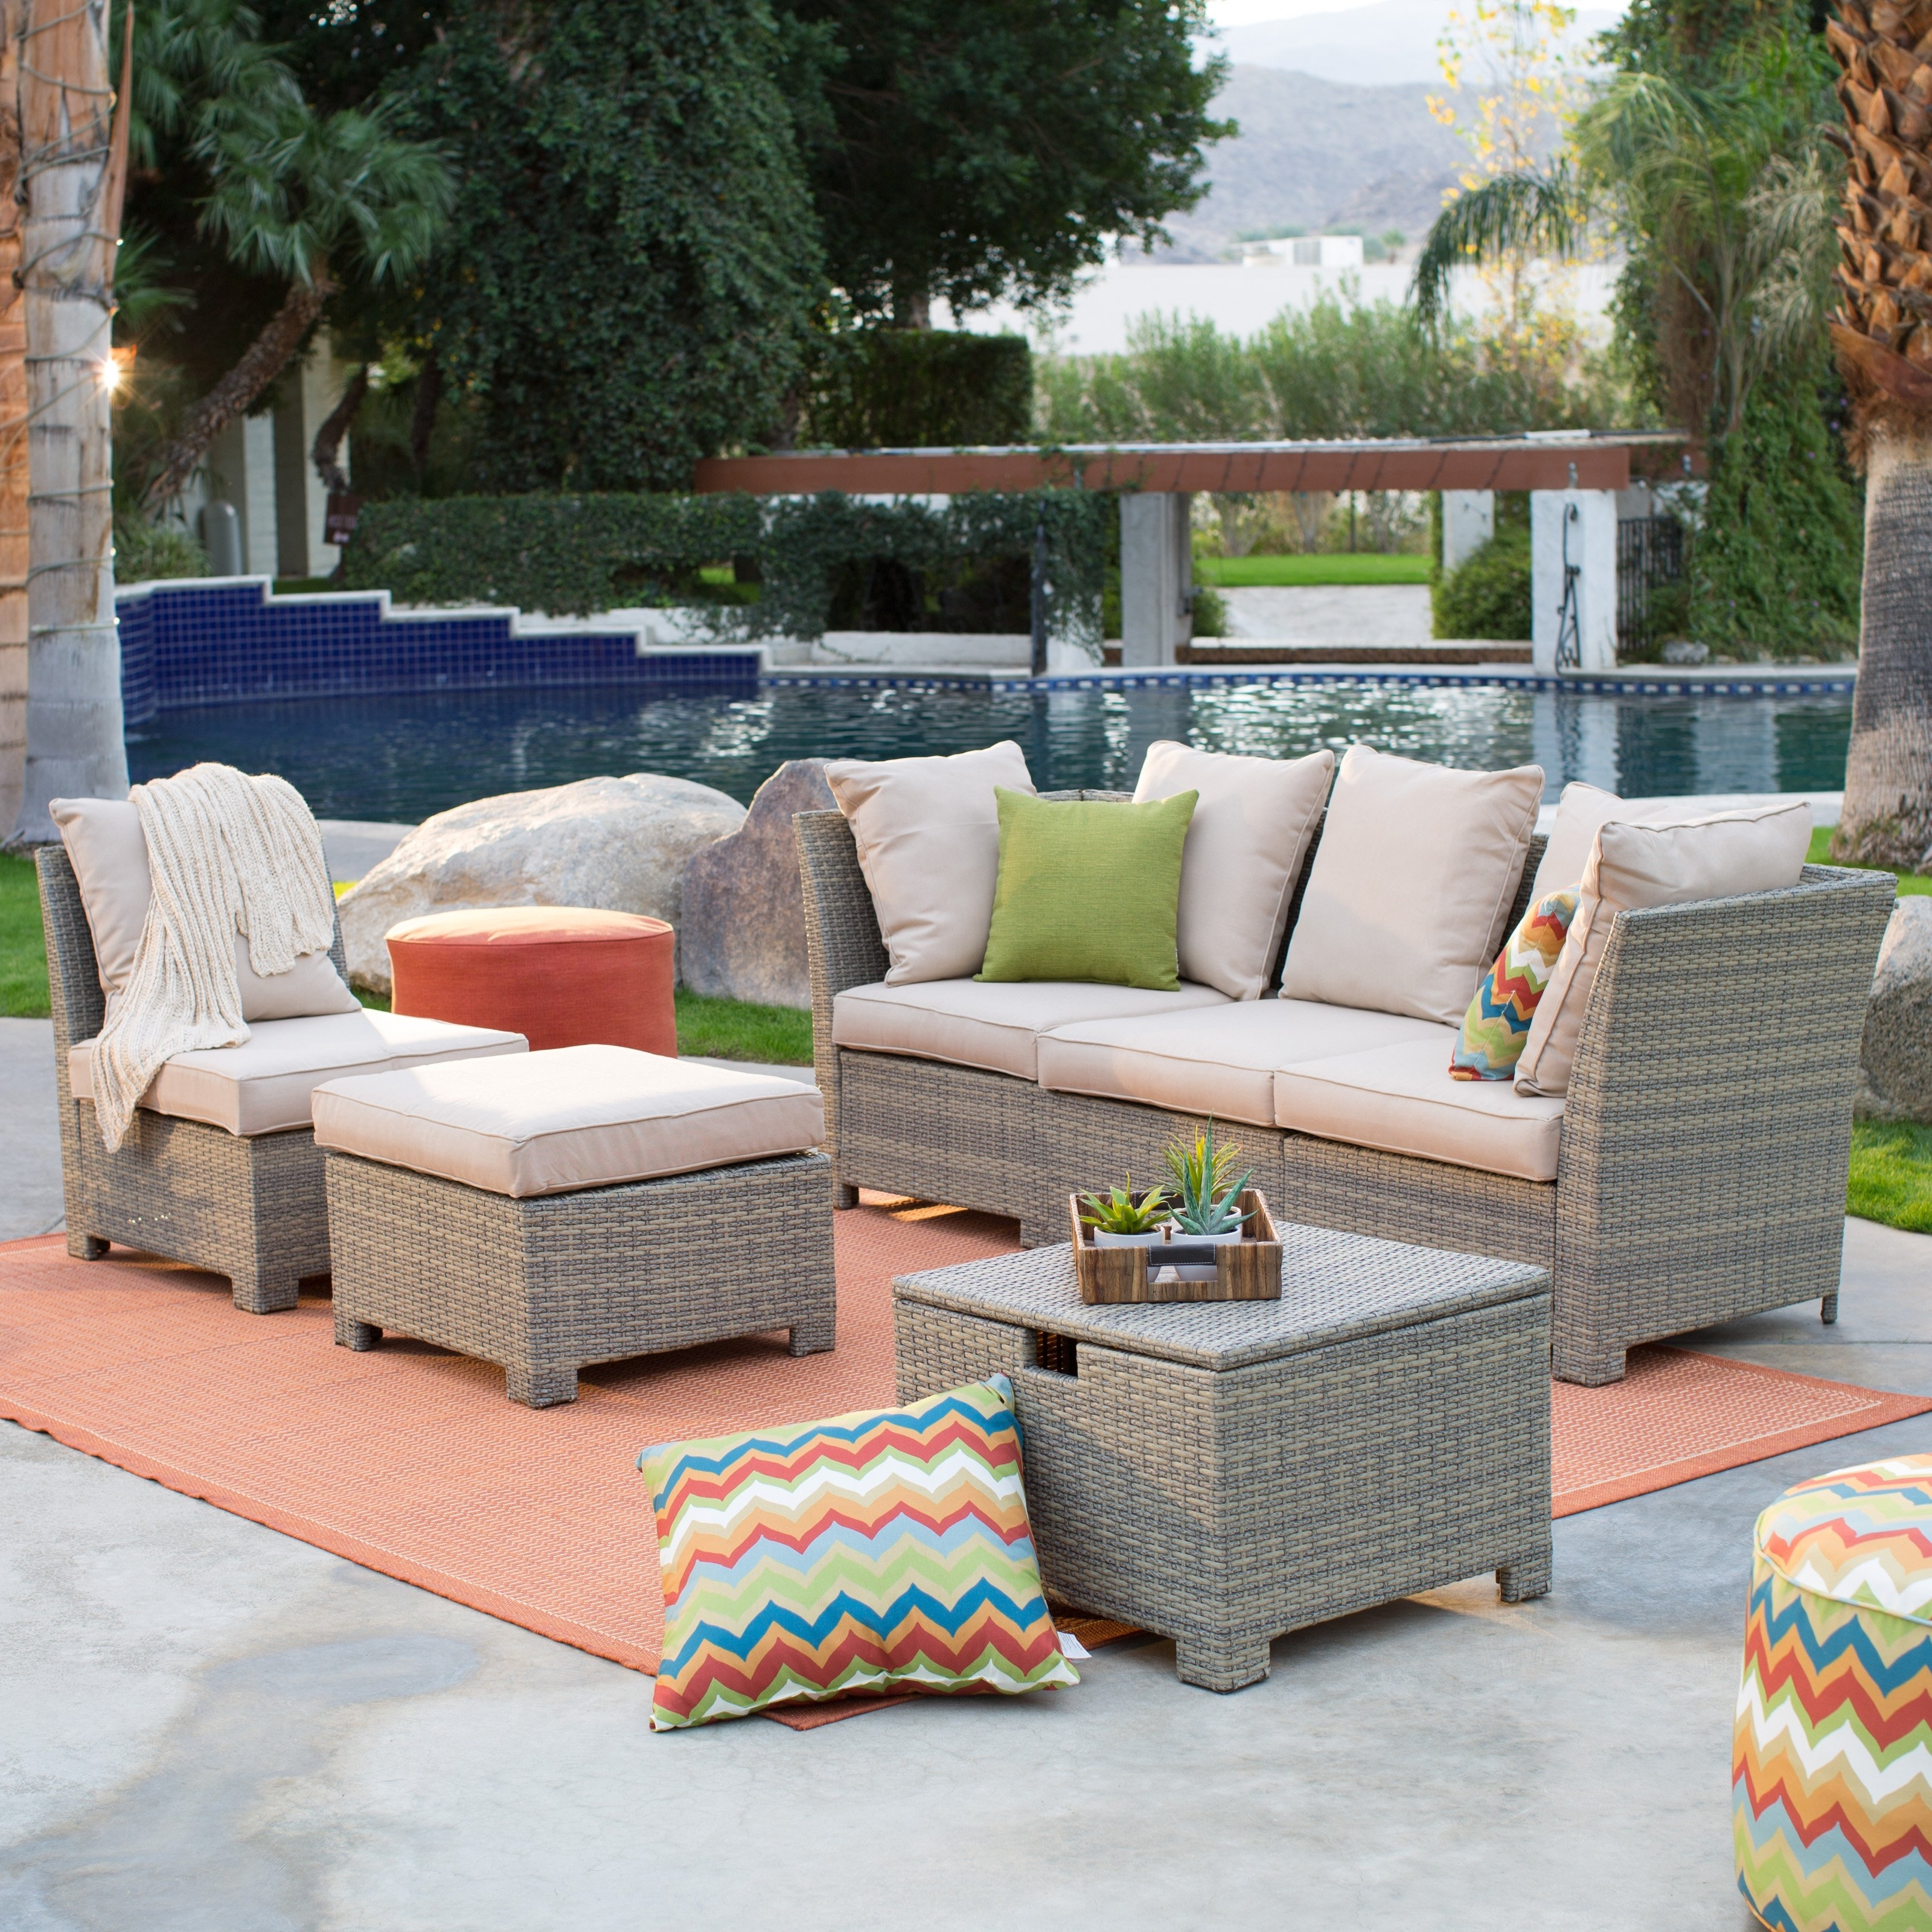 Well Known Patio Conversation Sets With Swivel Chairs For Patio : Kroger Patio Furniture Kroger Outdoor Furniture (View 11 of 20)